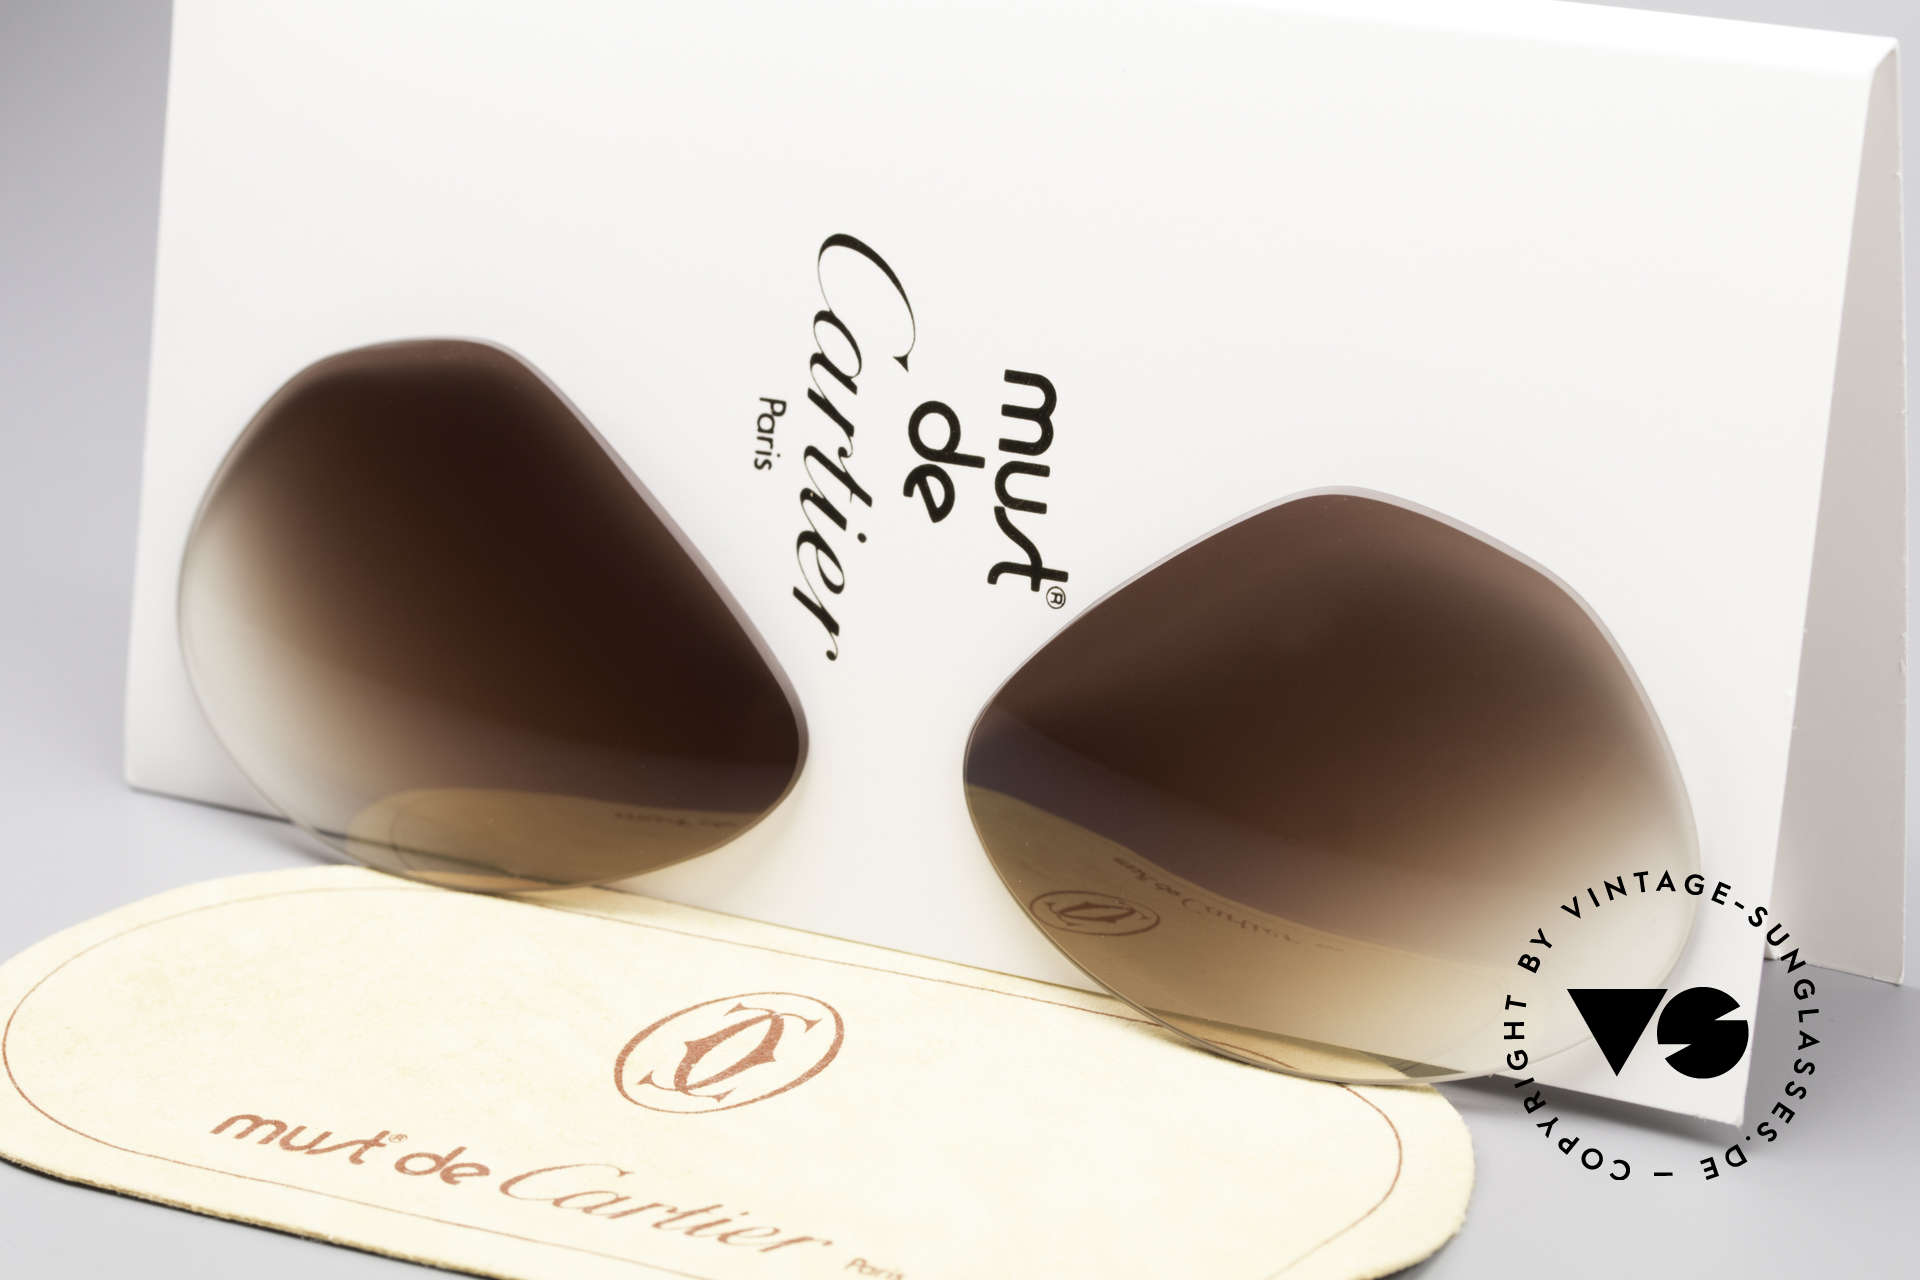 cba95fdca06 Sunglasses Cartier Vendome Lenses - L Brown Gradient Sun Lenses ...